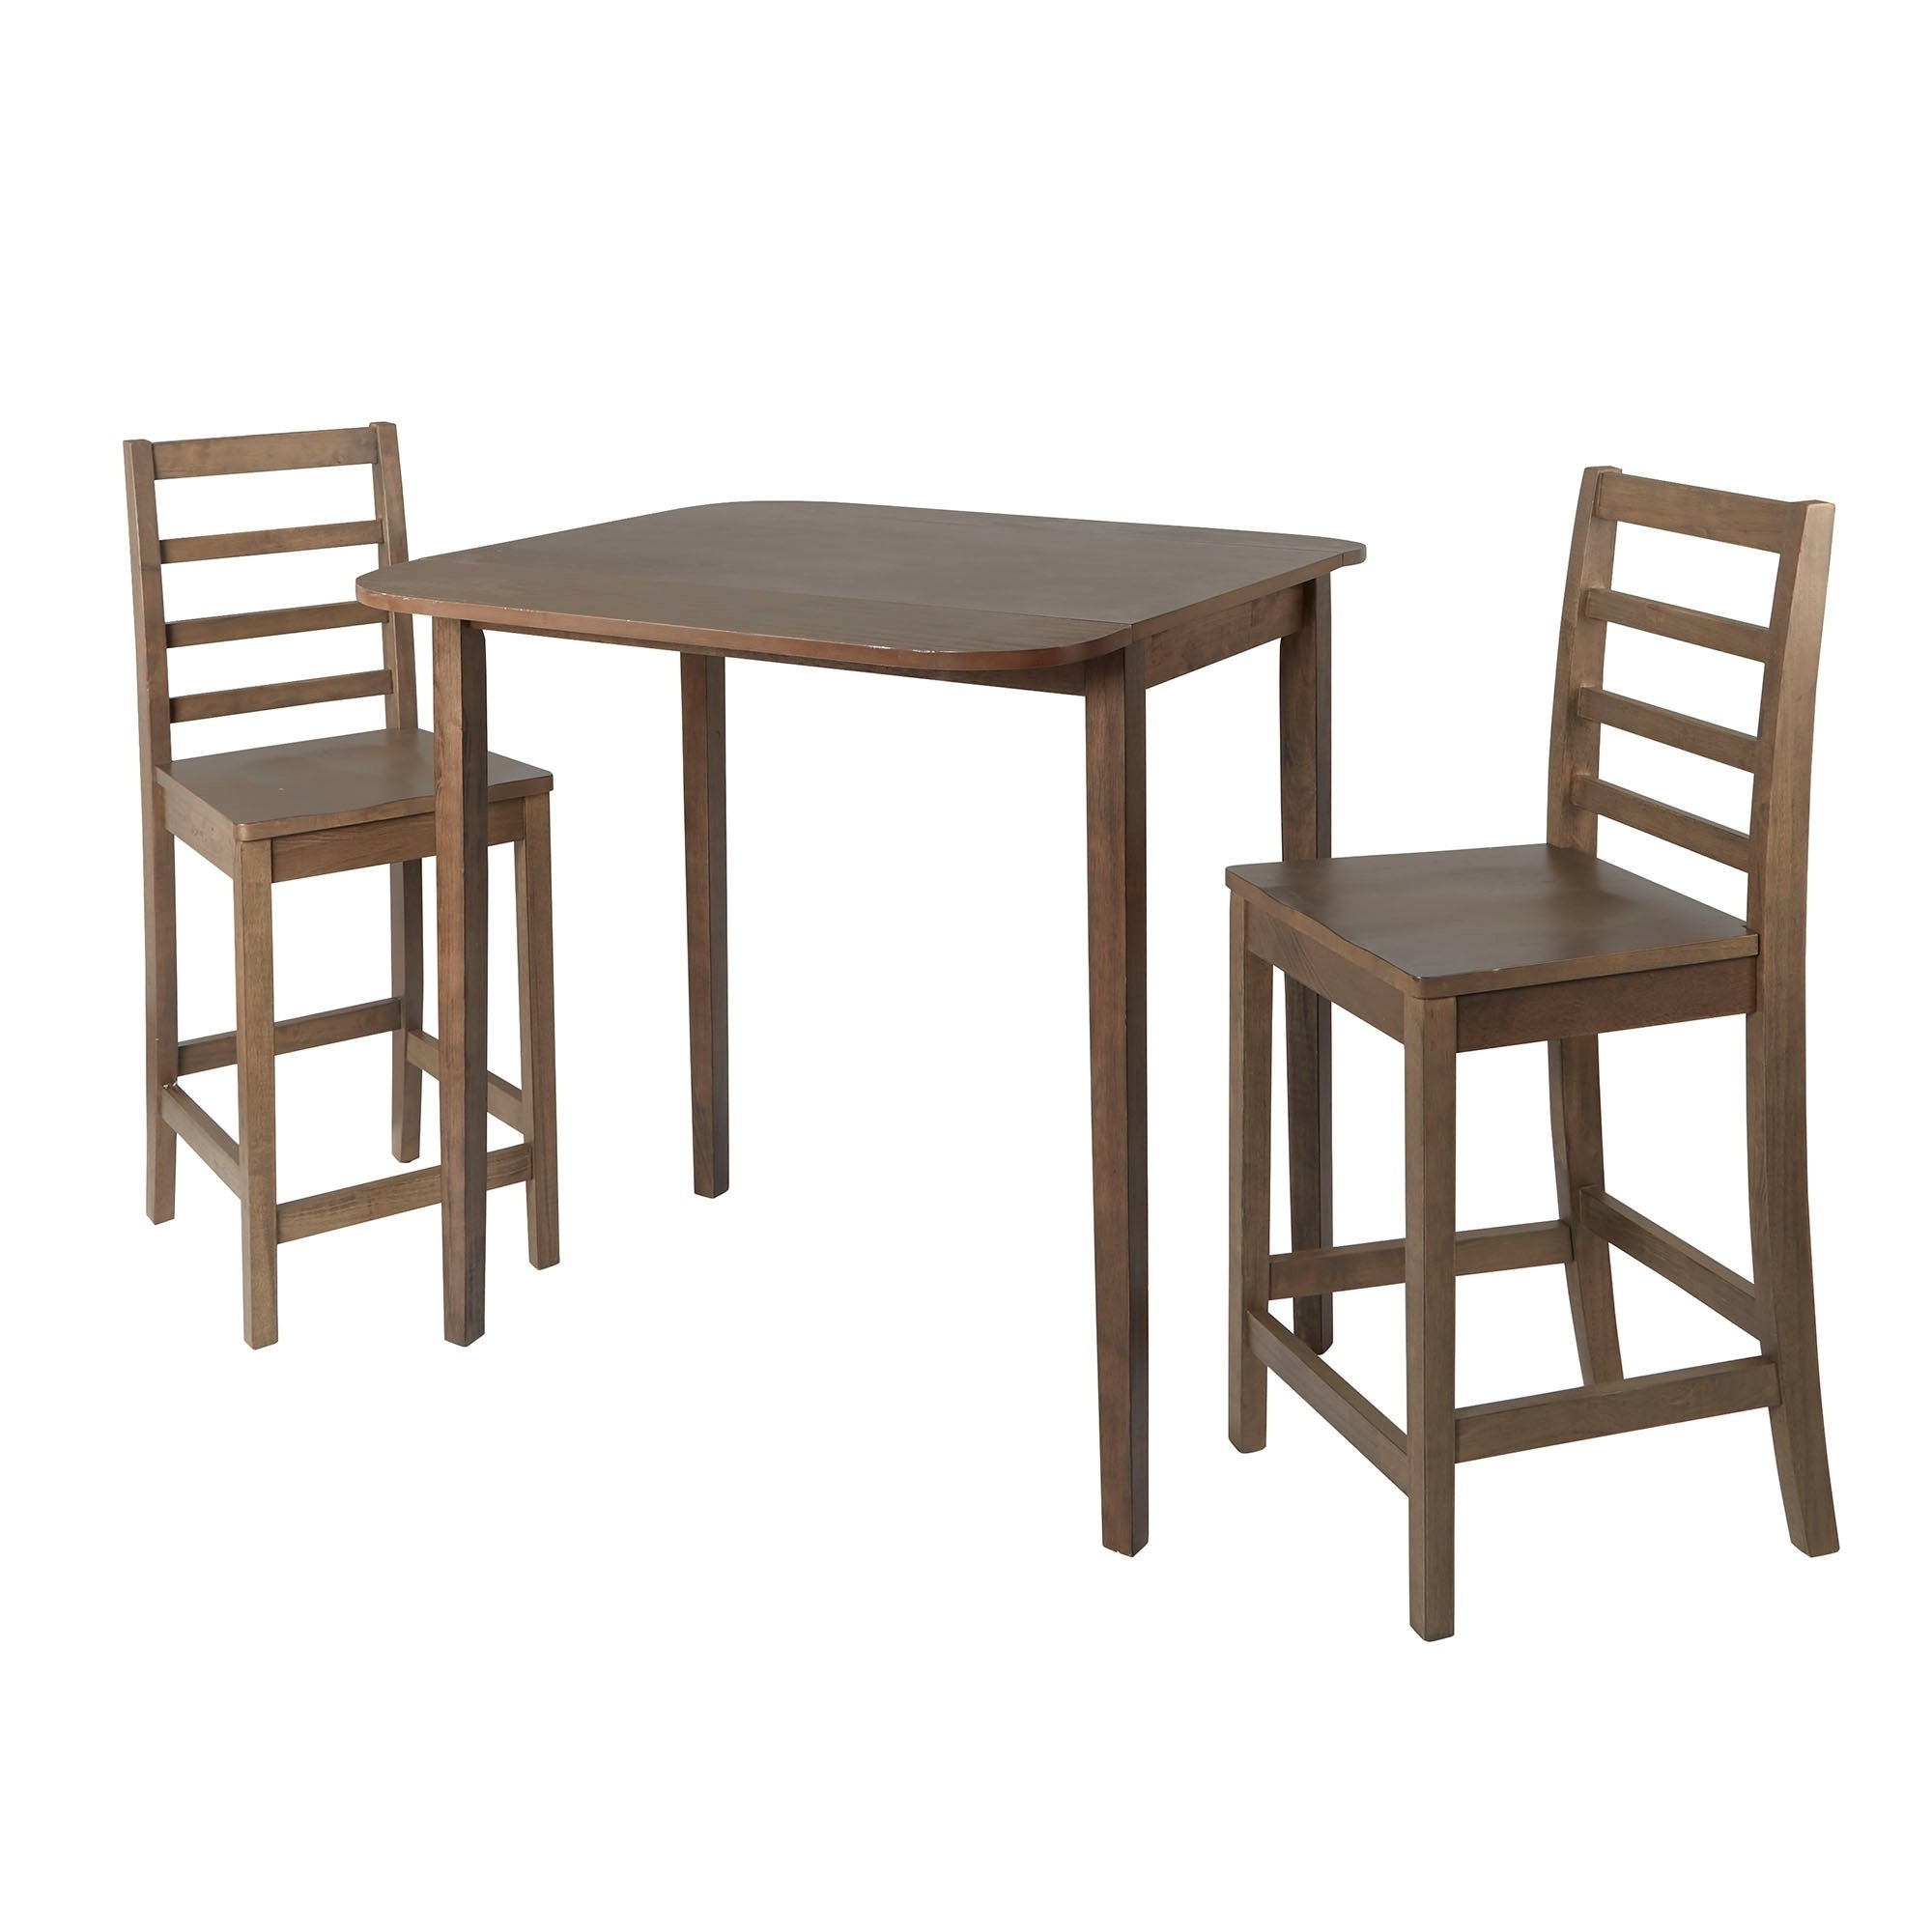 Widely Used Transitional 3 Piece Drop Leaf Casual Dining Tables Set In Bennett 3 Piece Drop Leaf Pub Dining Set (View 29 of 30)